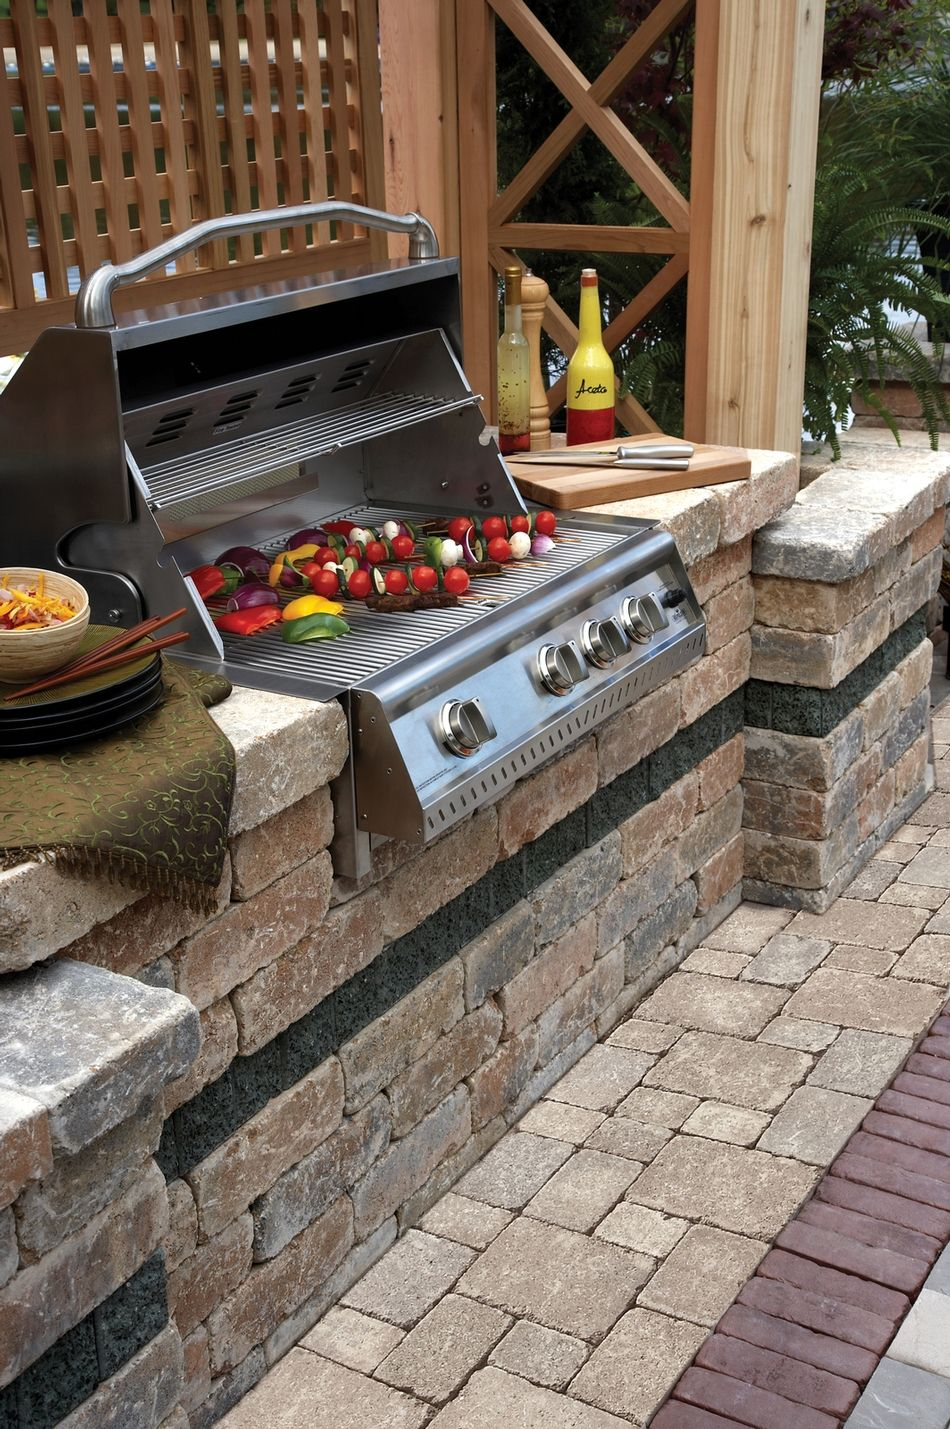 Brussels Dimensional™ BBQ Grill Island Our Outdoor Kitchens Offer Function,  Beauty, And Are Built To Last. We Have Been Providing The Hanover U0026  Gettysburg ...